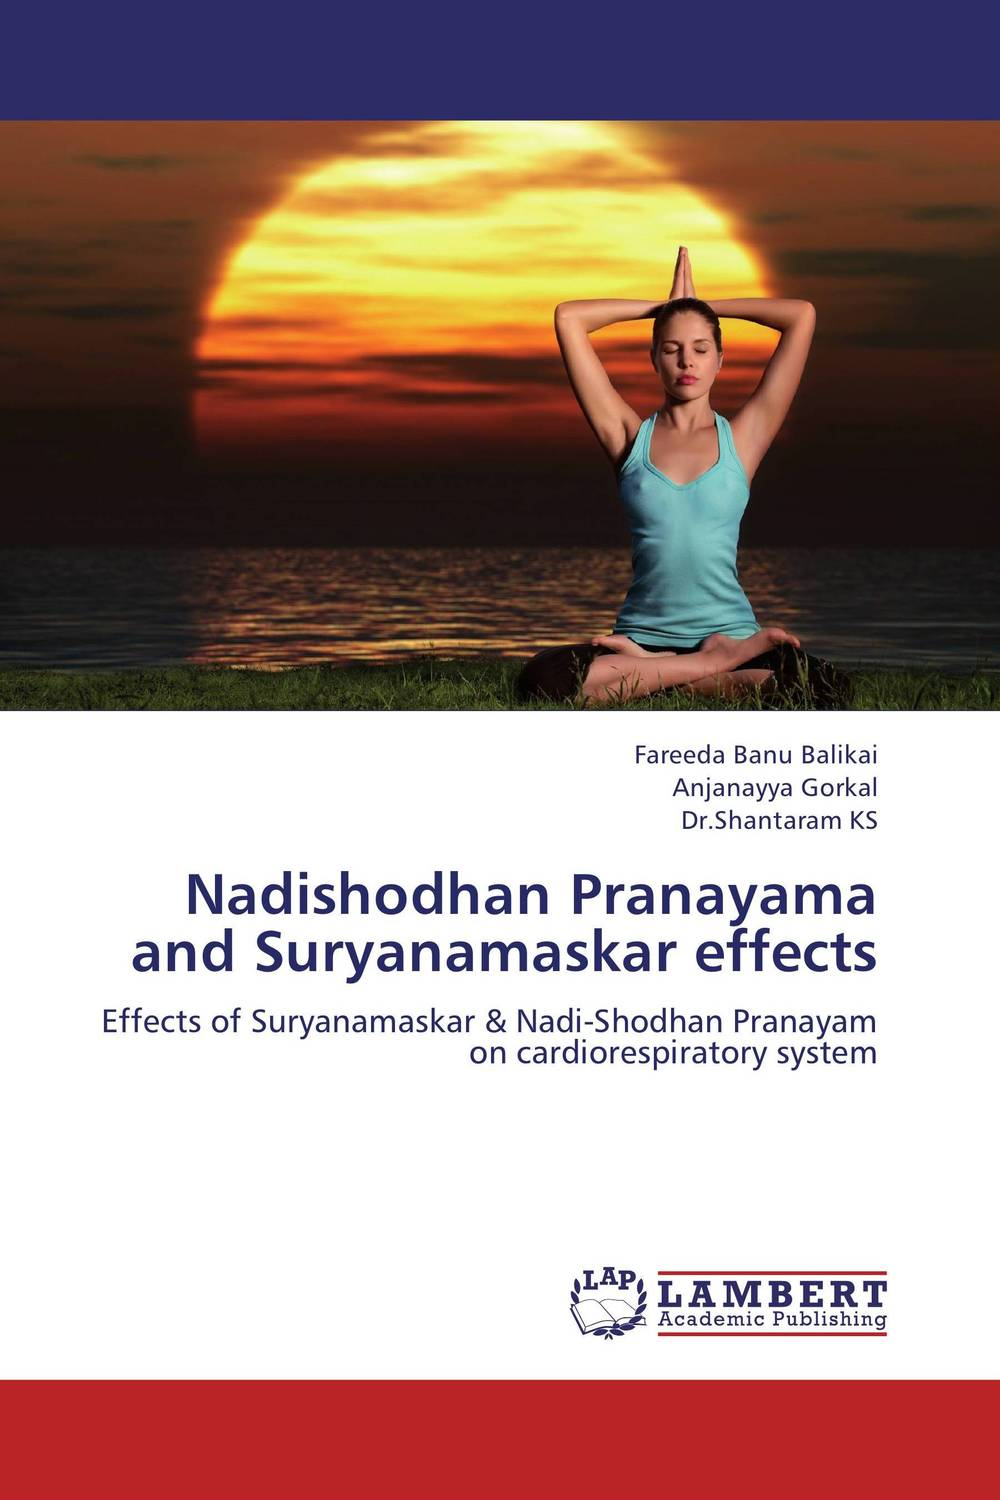 Nadishodhan Pranayama and Suryanamaskar effects effects of physical exercise on hypertension